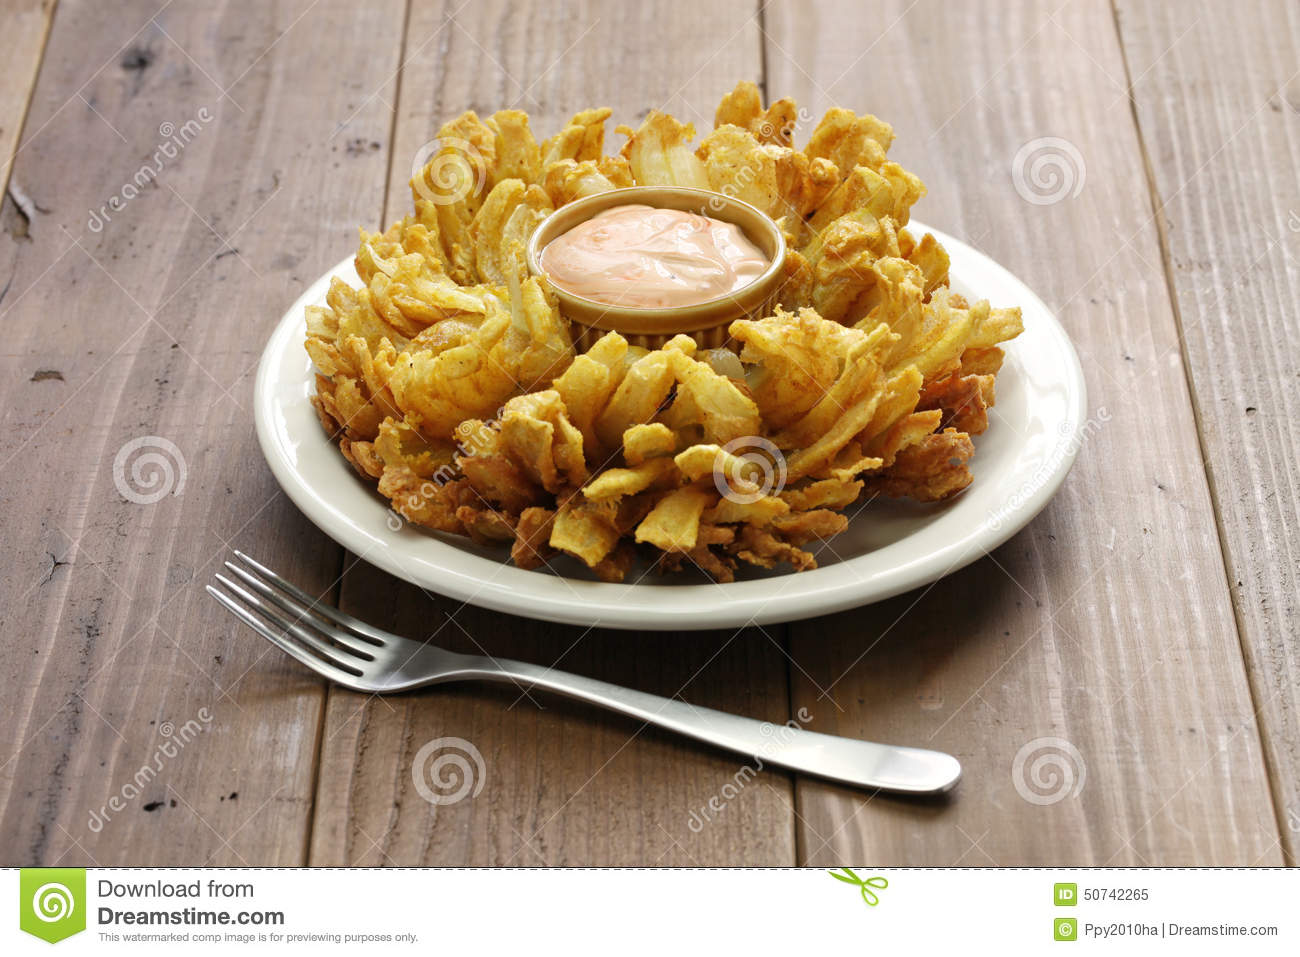 Homemade blooming onion